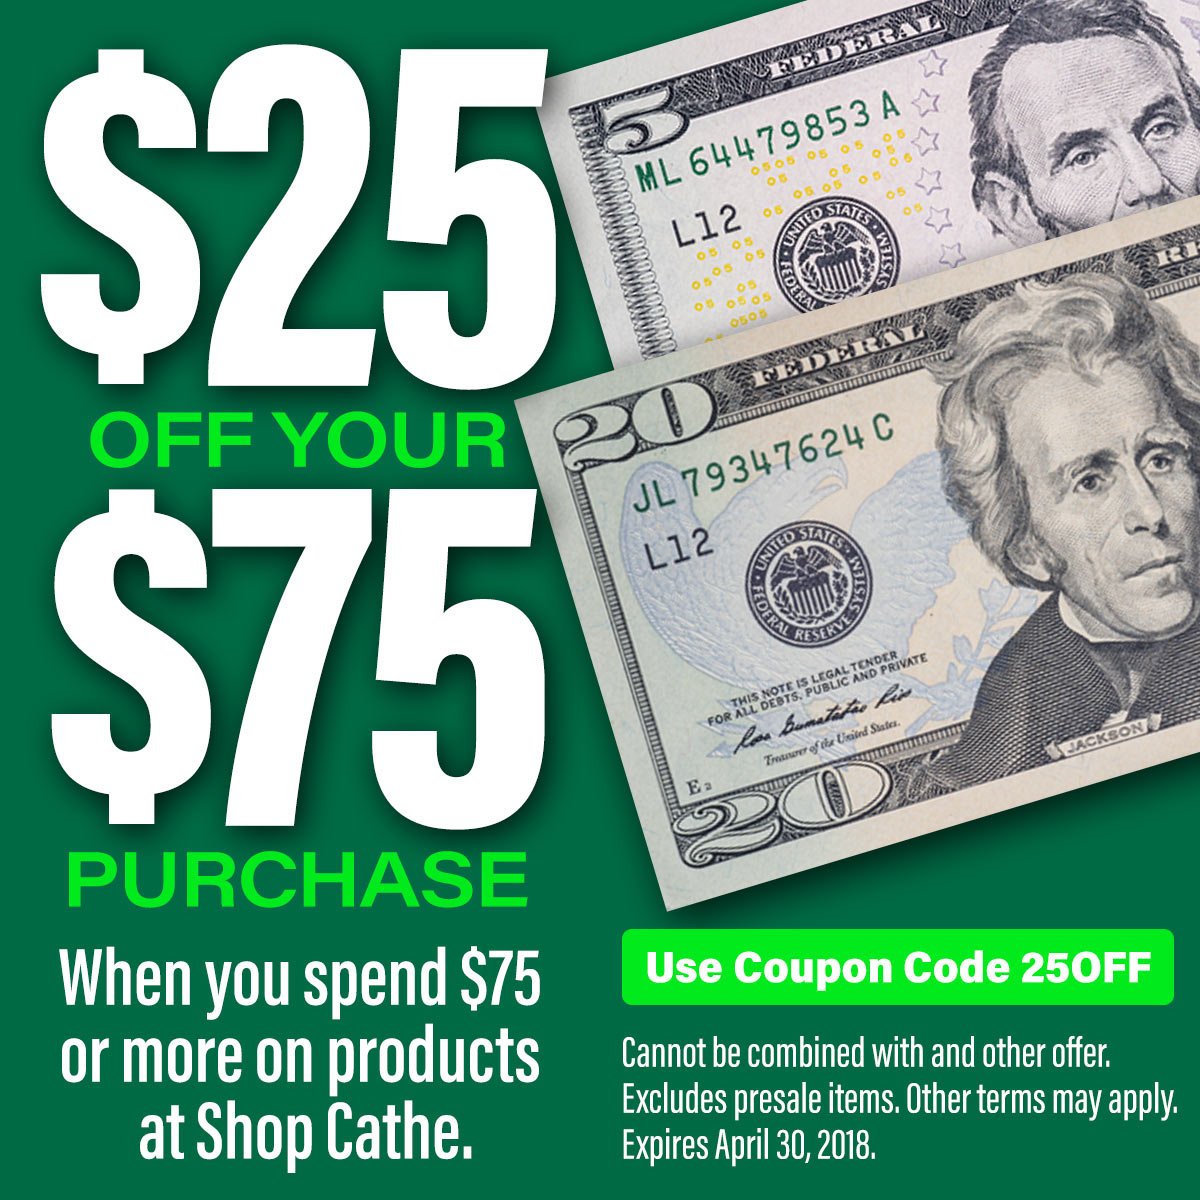 image of $25 Off Coupon